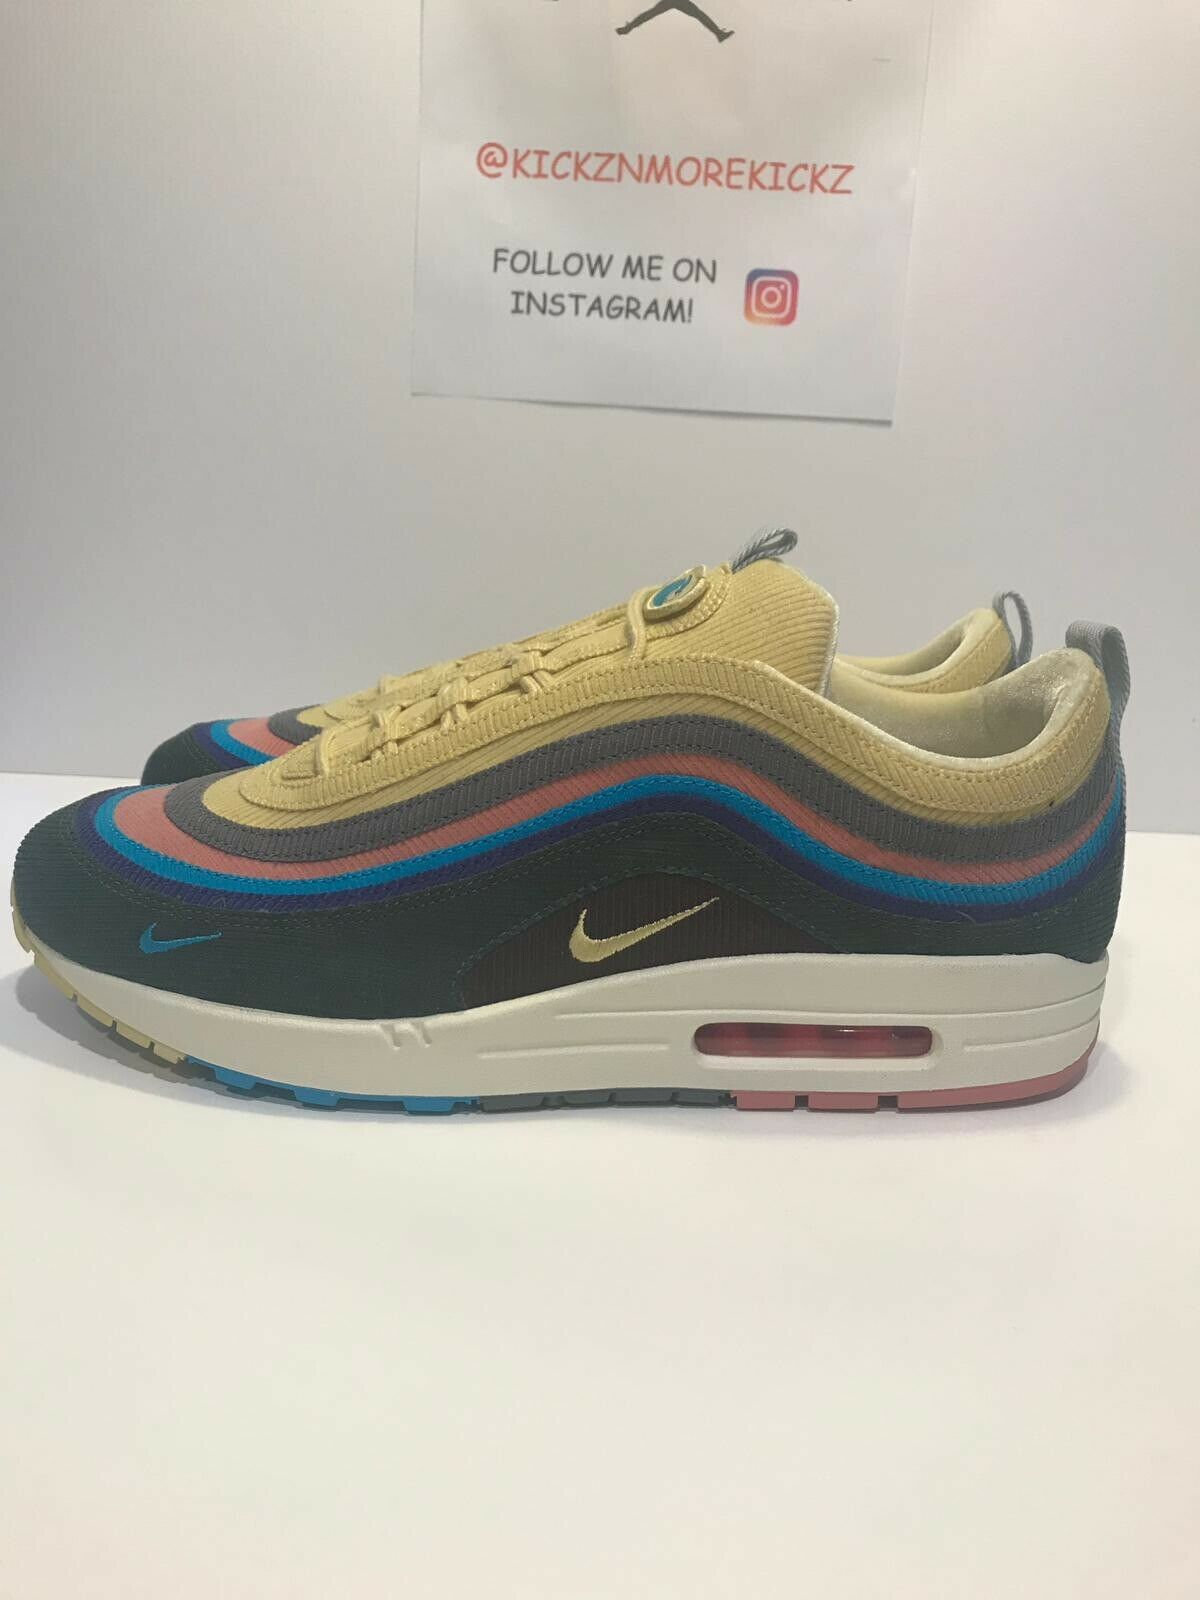 Air Max 1 97 Sean Wotherspoon Size 13 AJ4219-400 Extra Laces BRAND NEW DS